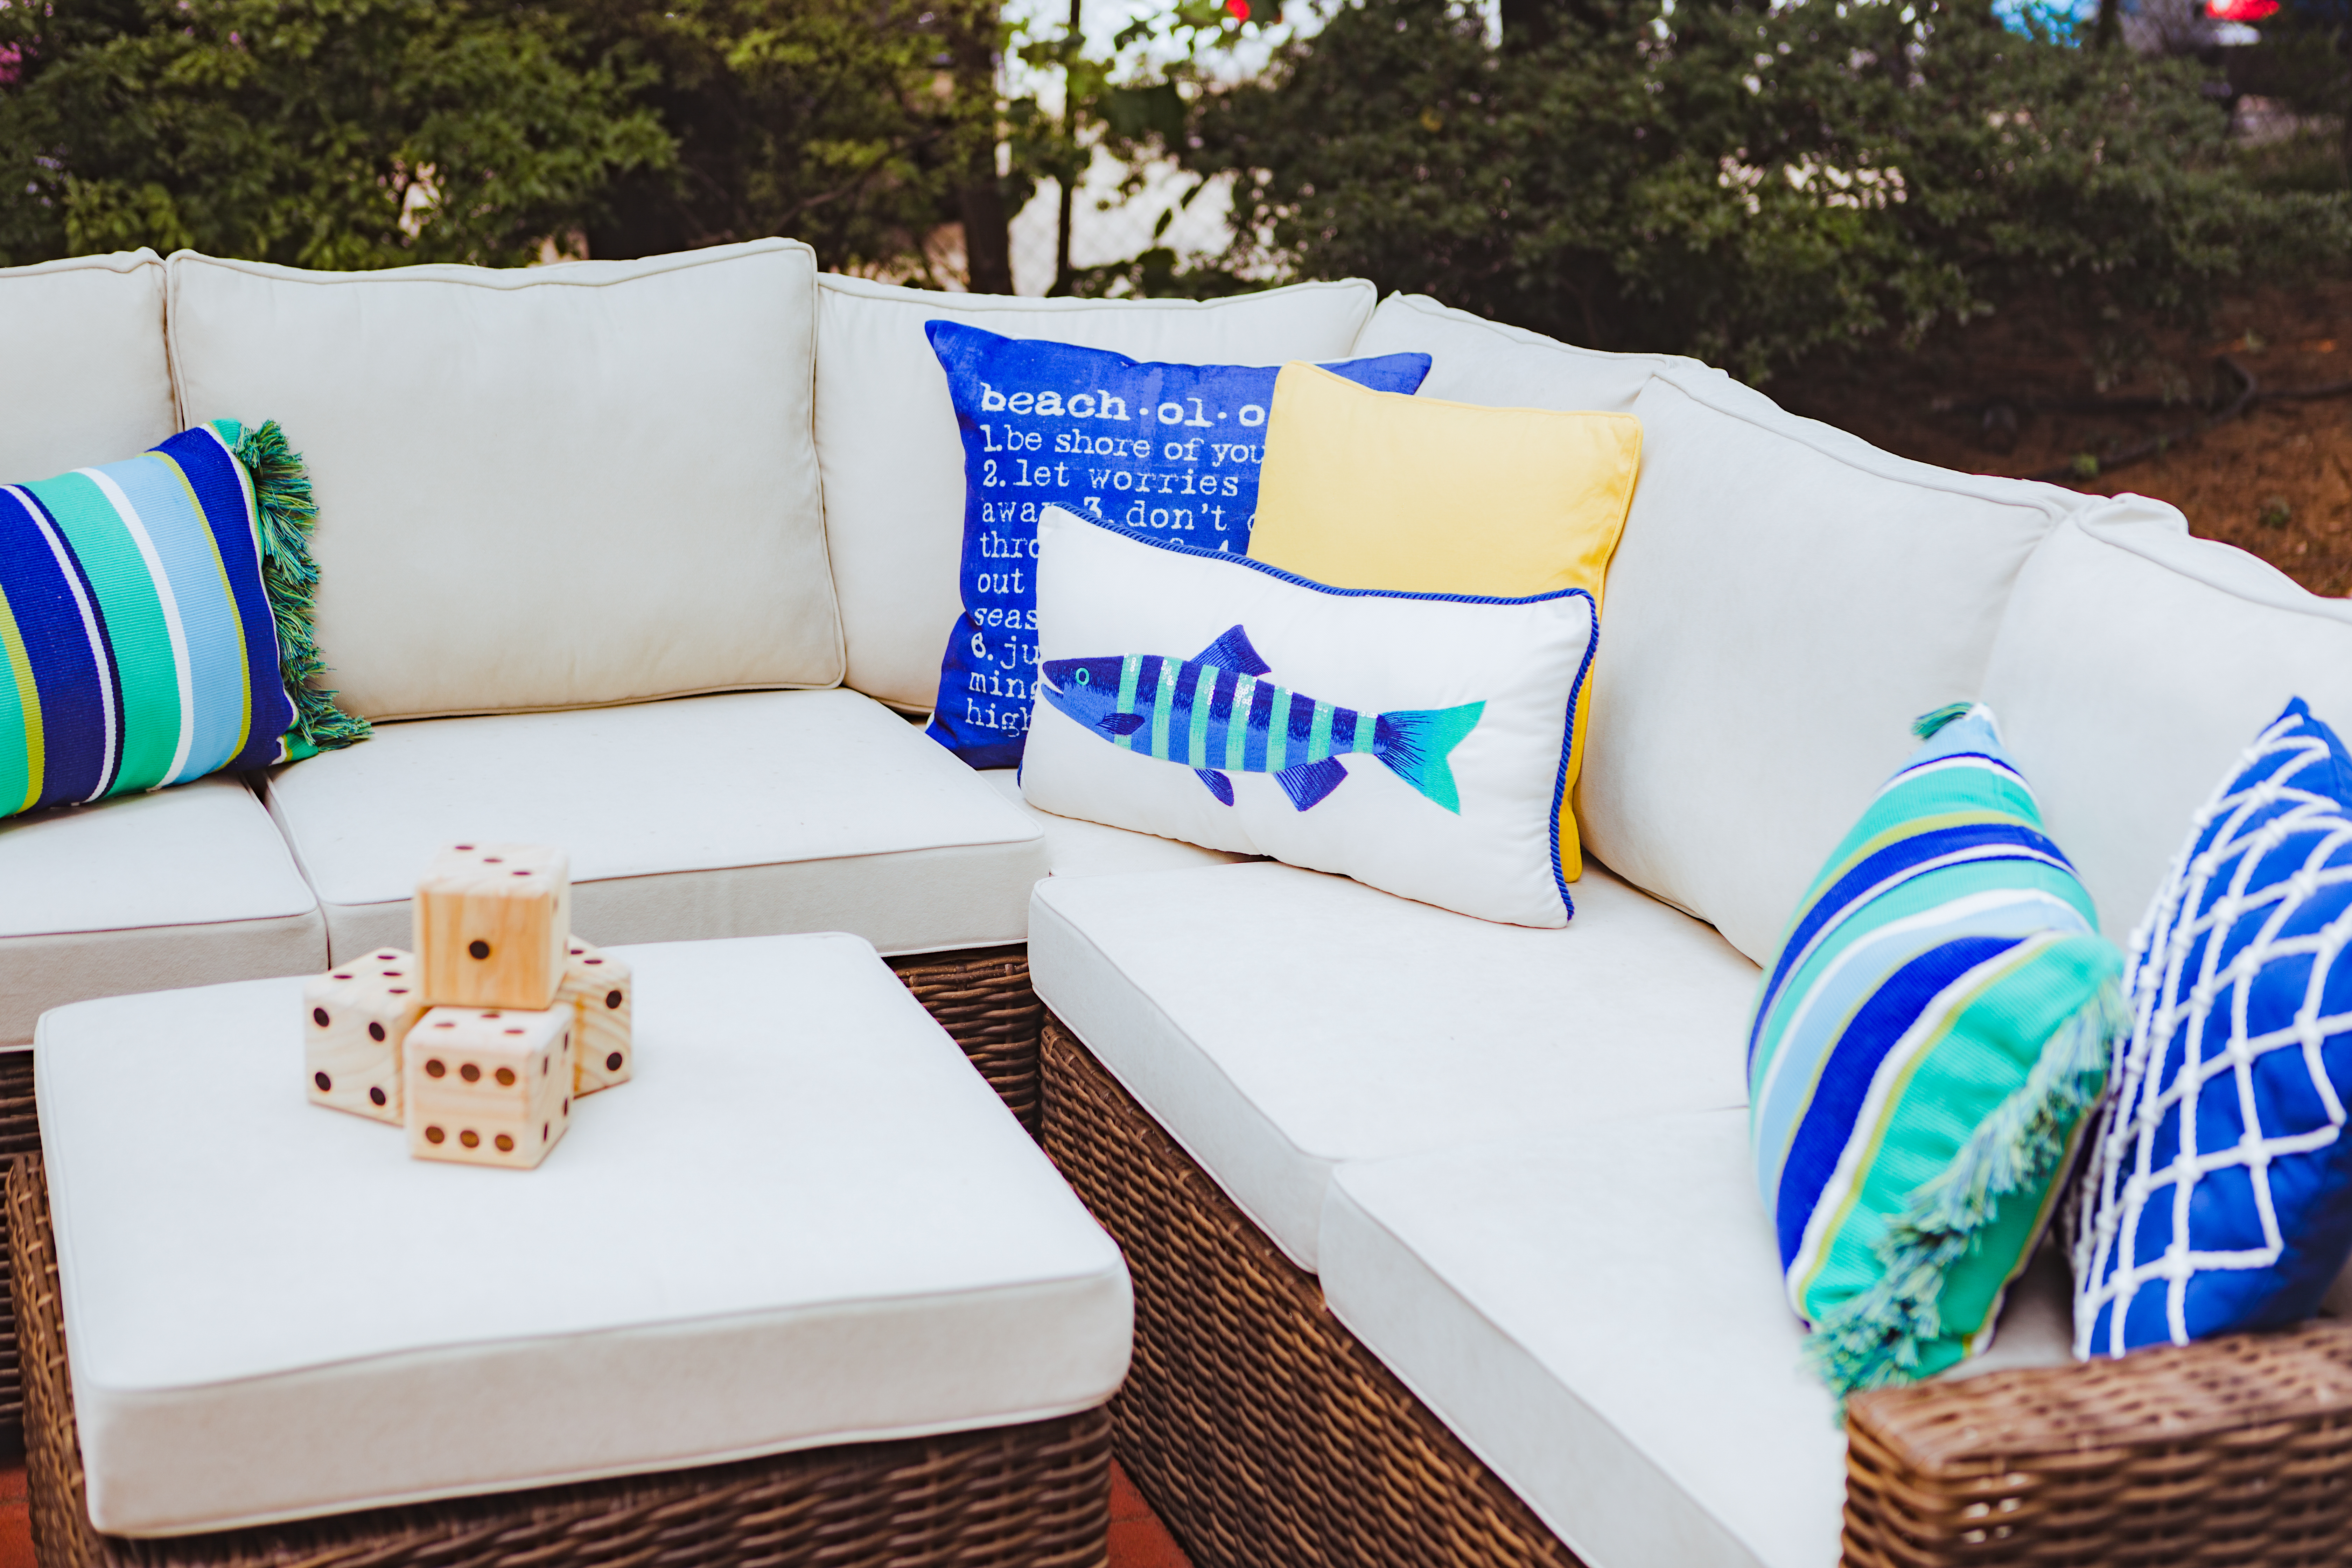 coastal summer backyard party with pier 1 shannon claire